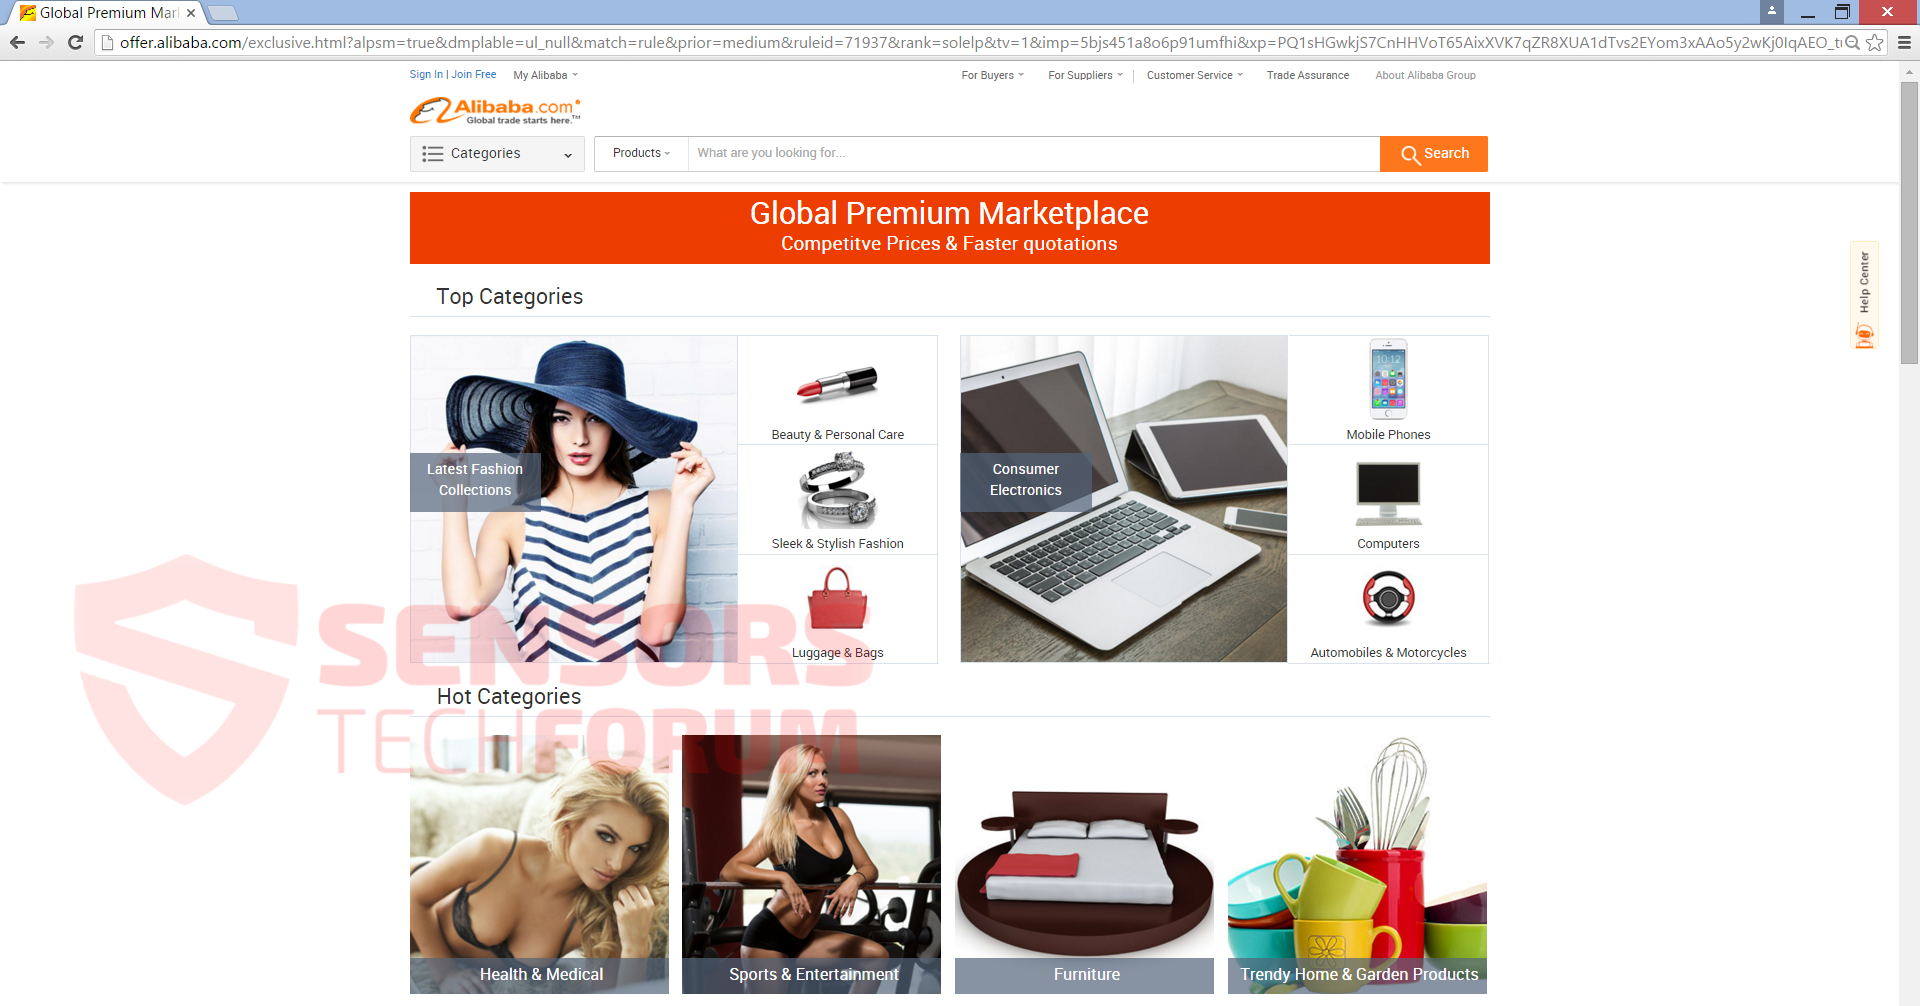 STF-wonderlandads-com-wonderland-ads-offer-alibaba-redirect